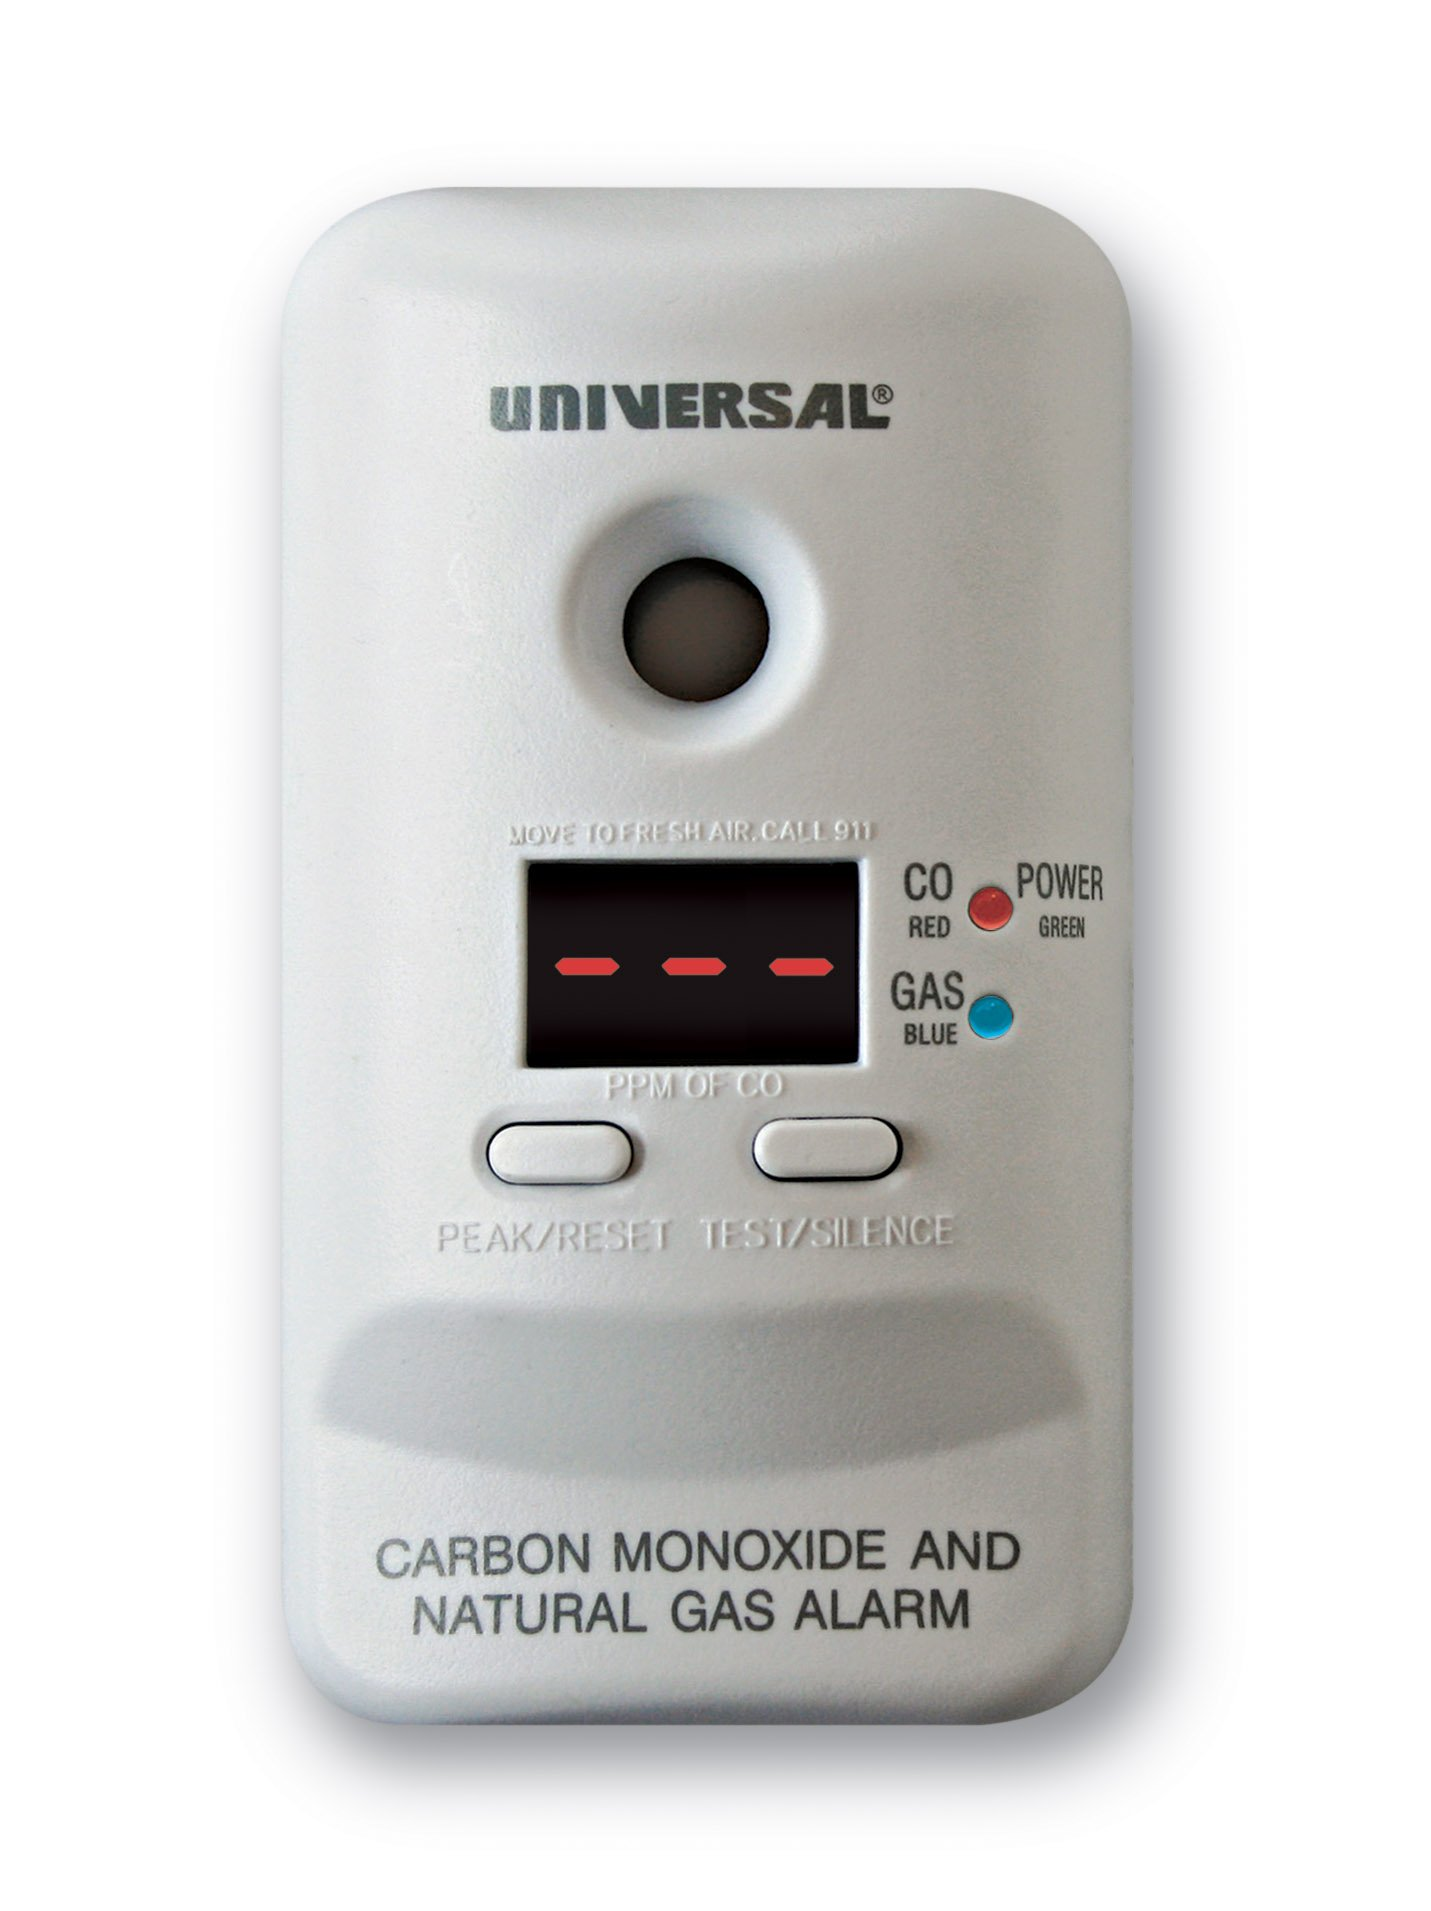 Universal Security Instruments MCND401 M Series Plug-In Carbon Monoxide and Natural Gas Alarm with 9-Volt Battery Backup by Universal Security Instruments